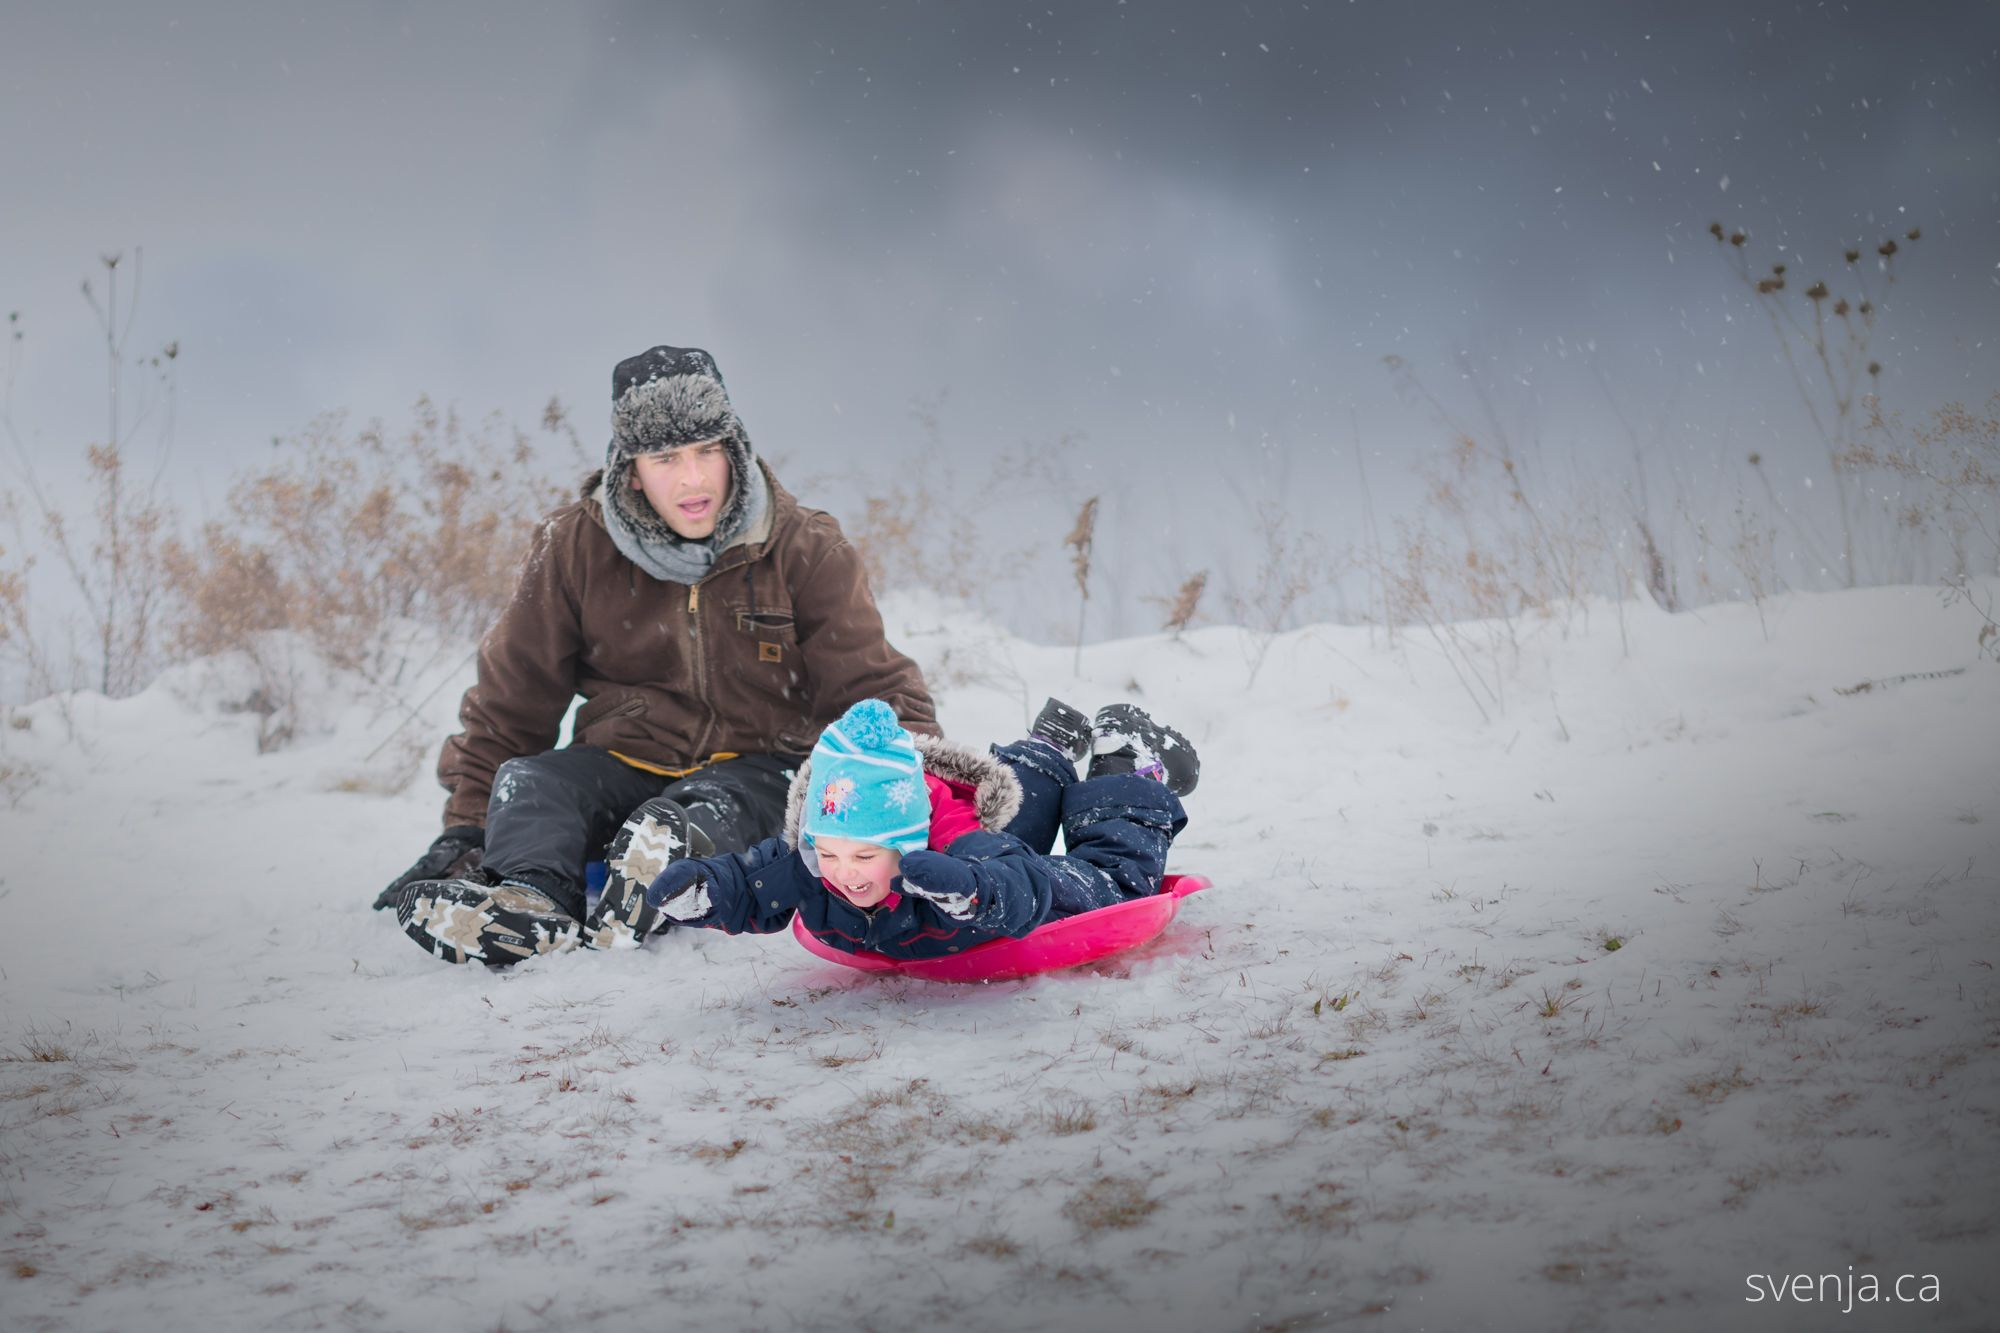 a young girl goes head-first on a sled down a hill, startling her father